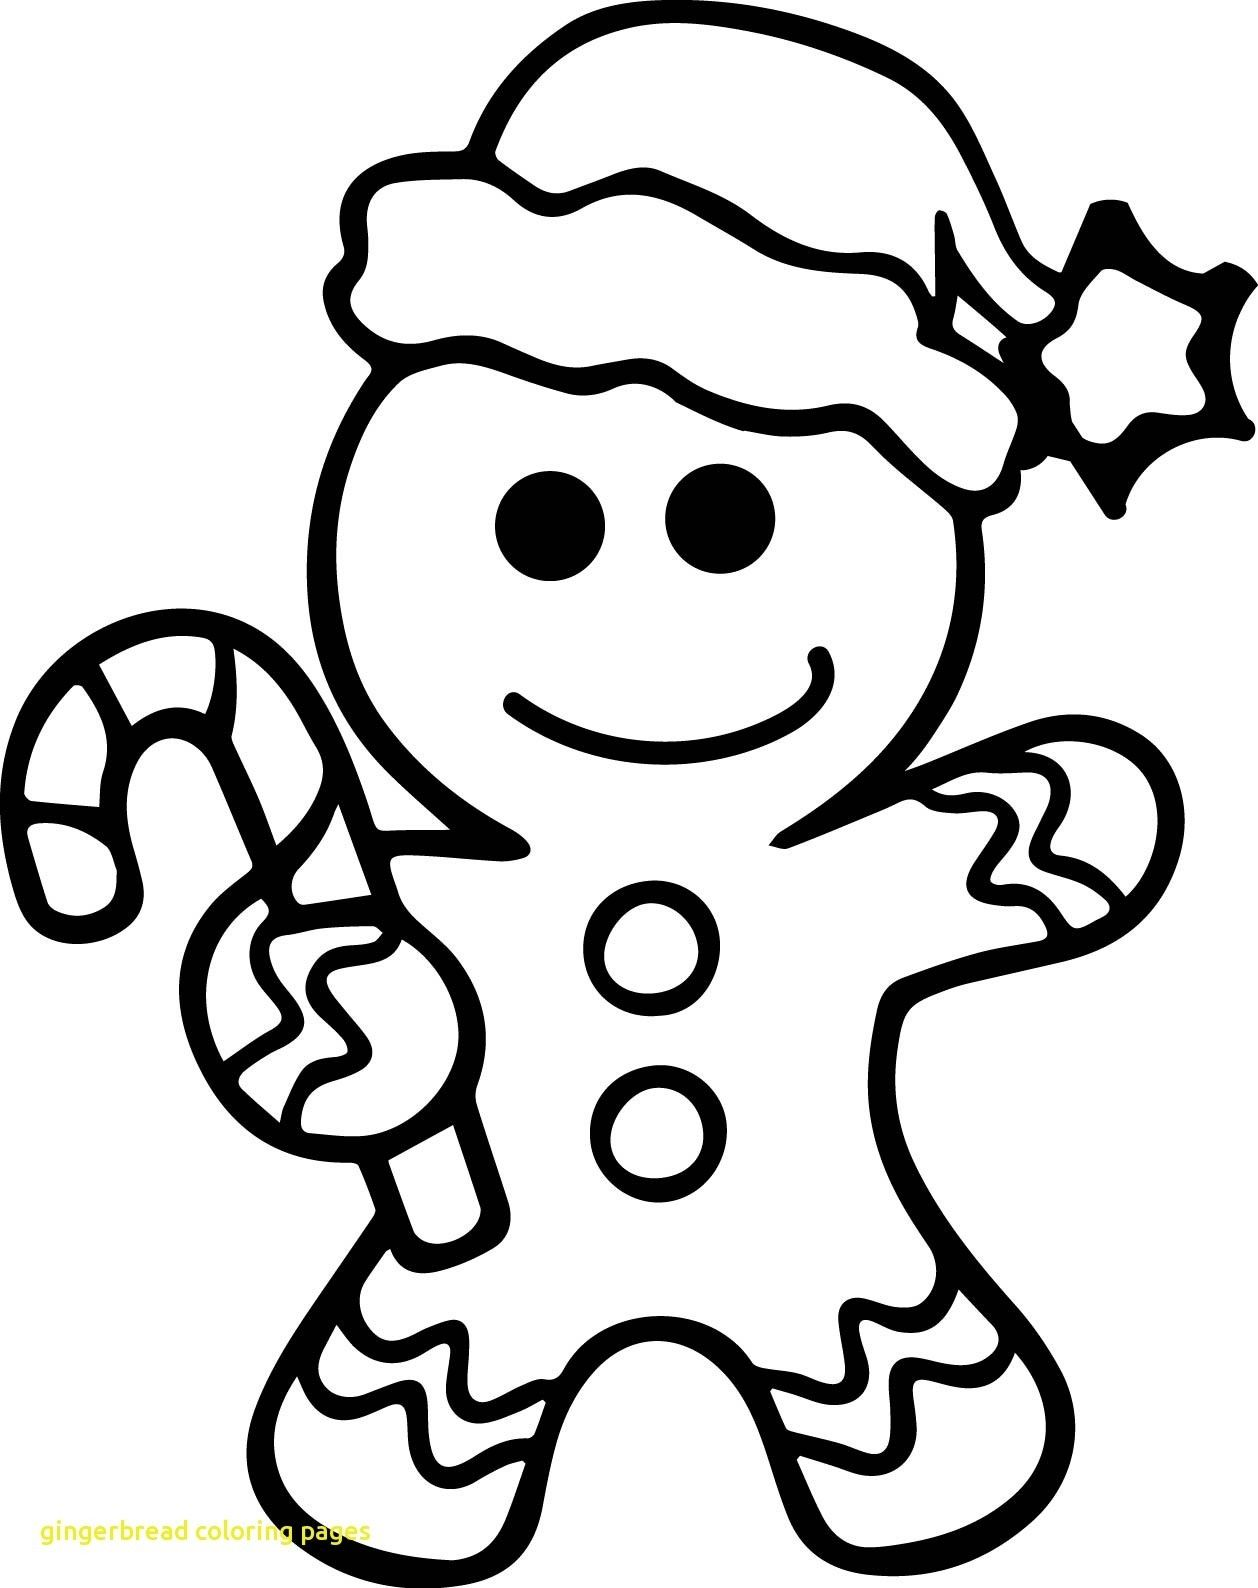 Gingerbread Coloring Pages Christmas Gingerbread Coloring